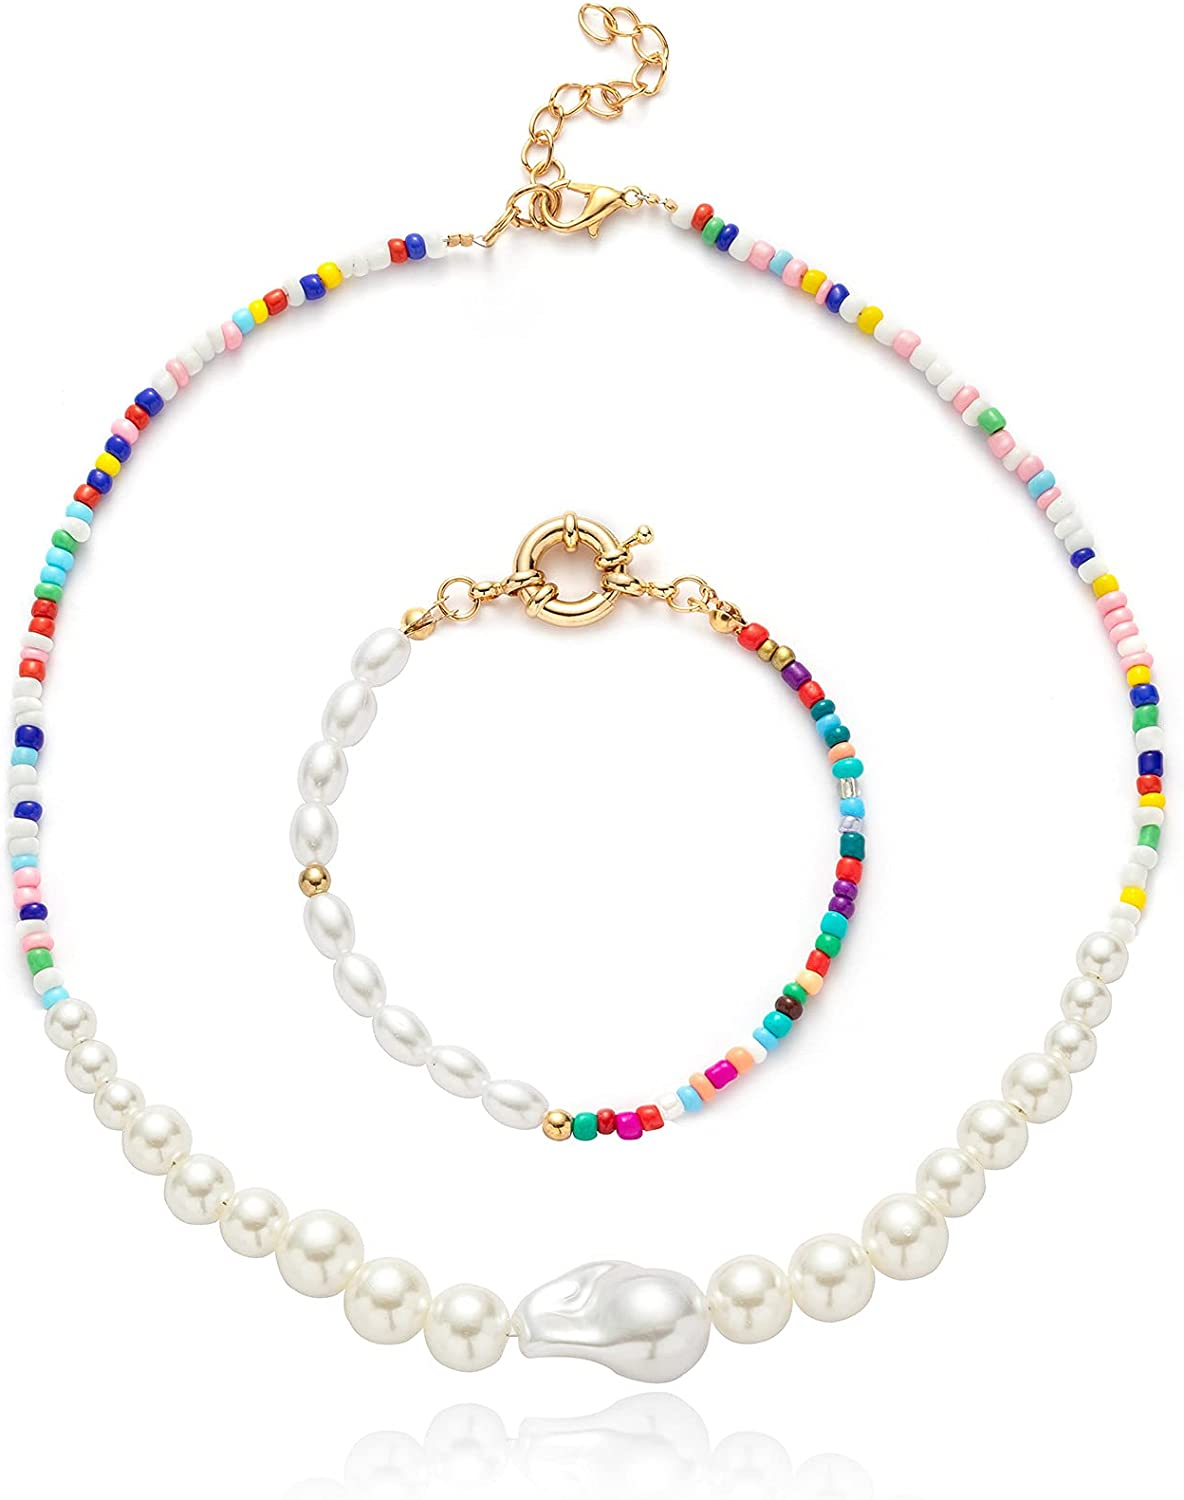 Pearl Beaded Necklace Colorful Necklace Bohemian Beaded Necklaces for Women Y2K Necklace Hand Made Pearl Choker Necklace for Women Girls 4PCS EXGOX